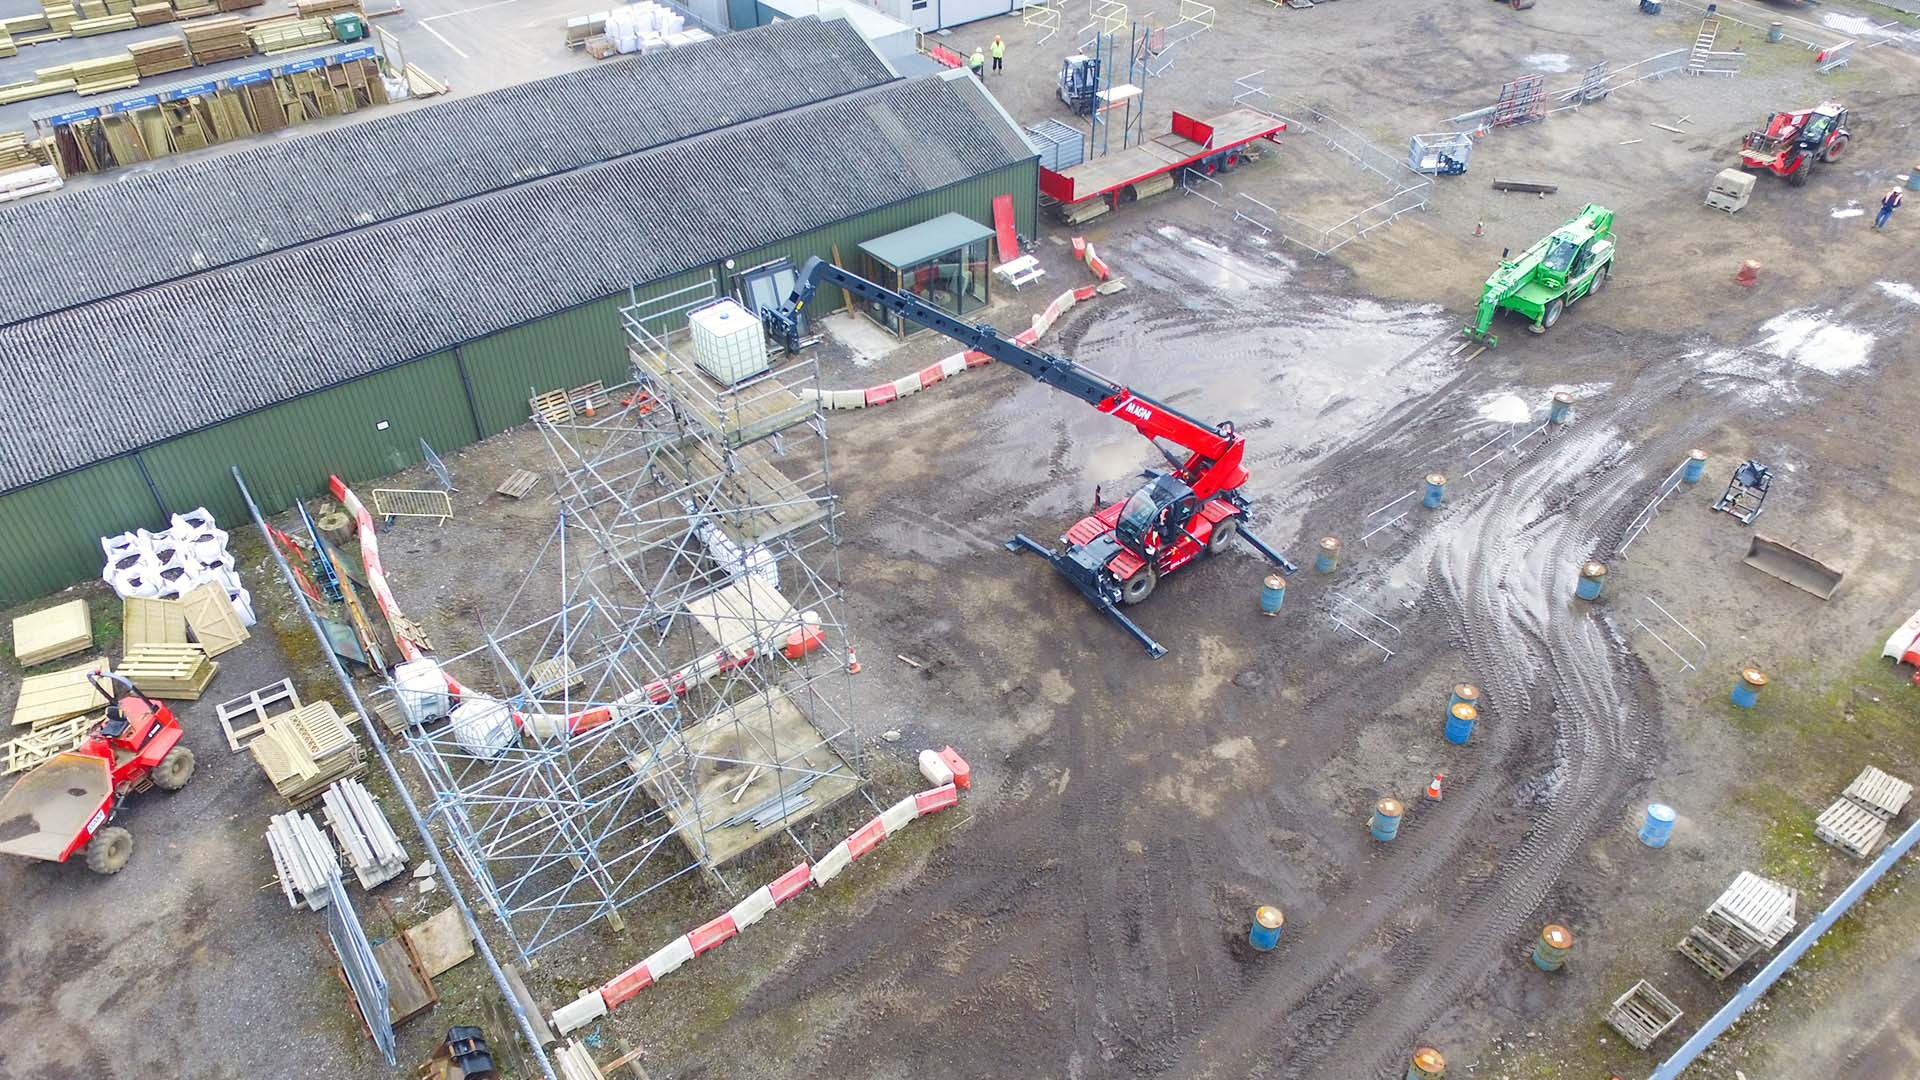 CPCS Telehandler, CPCS announce controversial update for 360 Telehandler operators: Make any amendments to your card after 28 August and lose the category